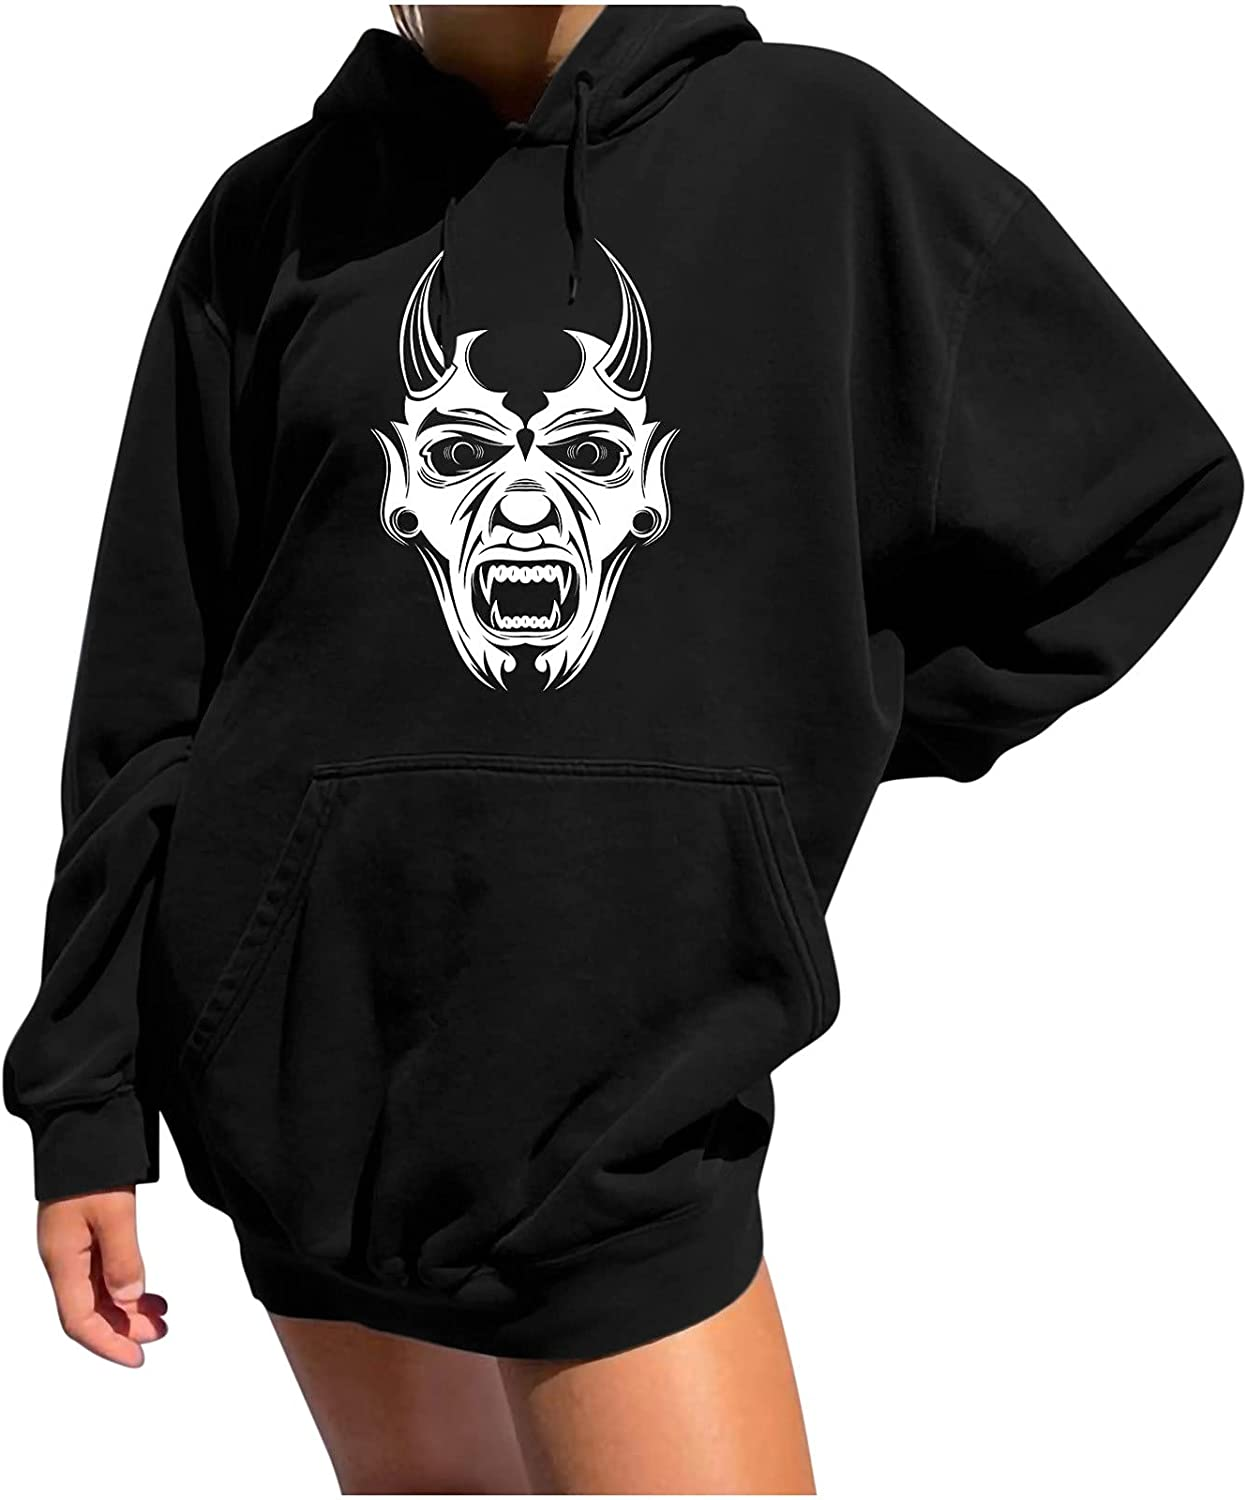 Funny Graphic Sweatshirts Free shipping for Women Soldering Hoodie Vintage Oversized Pul